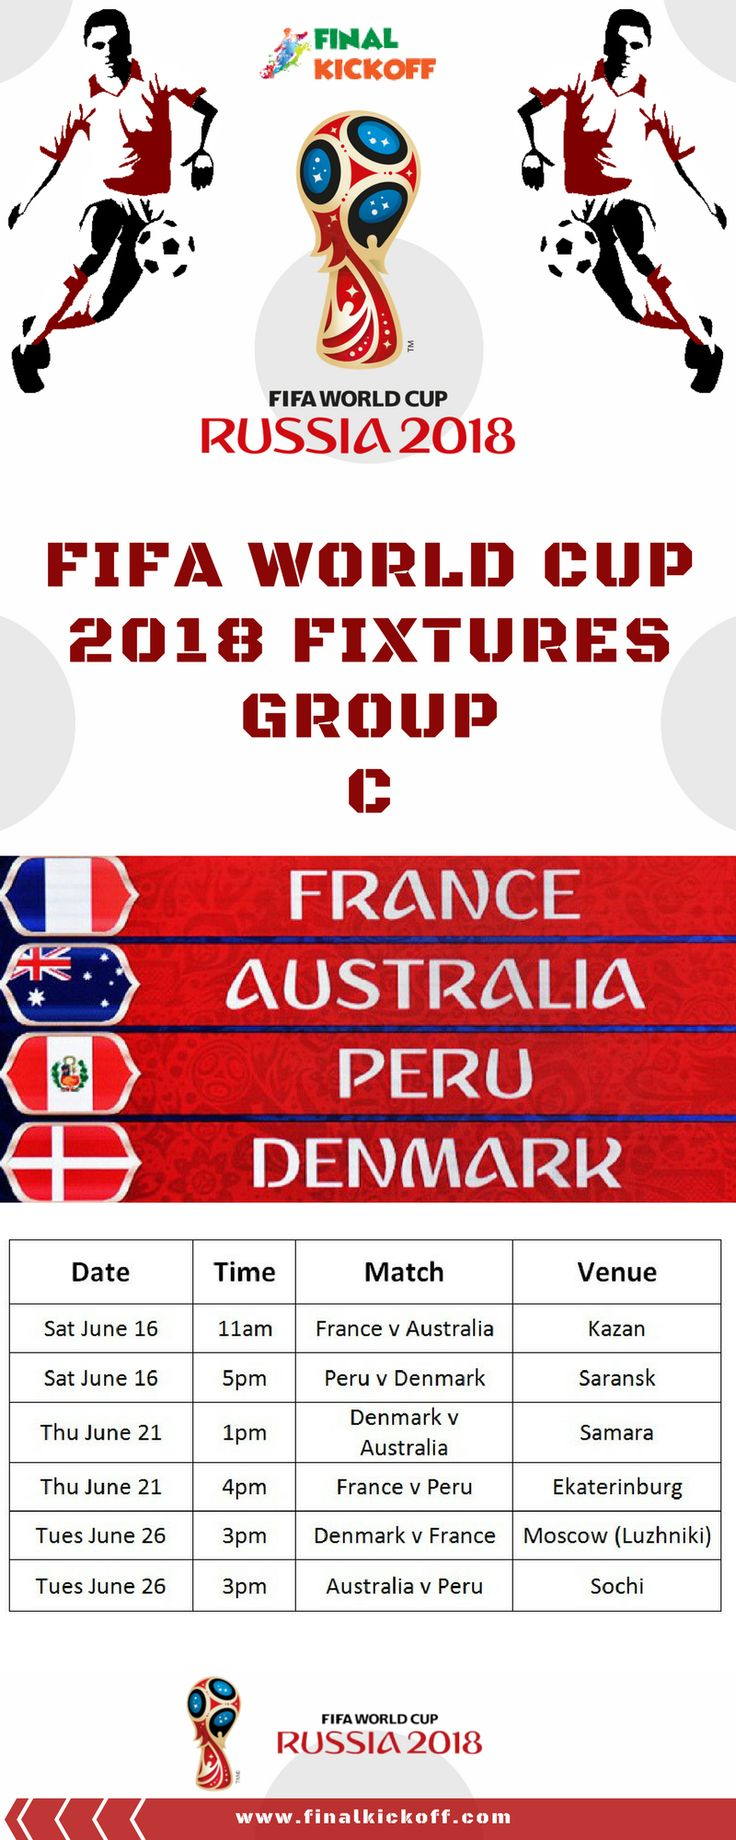 Simple Fixture Bd Time World Cup 2018 - 5a98f6e9dc59a8207377cad33746a5d1  Image_234686 .jpg